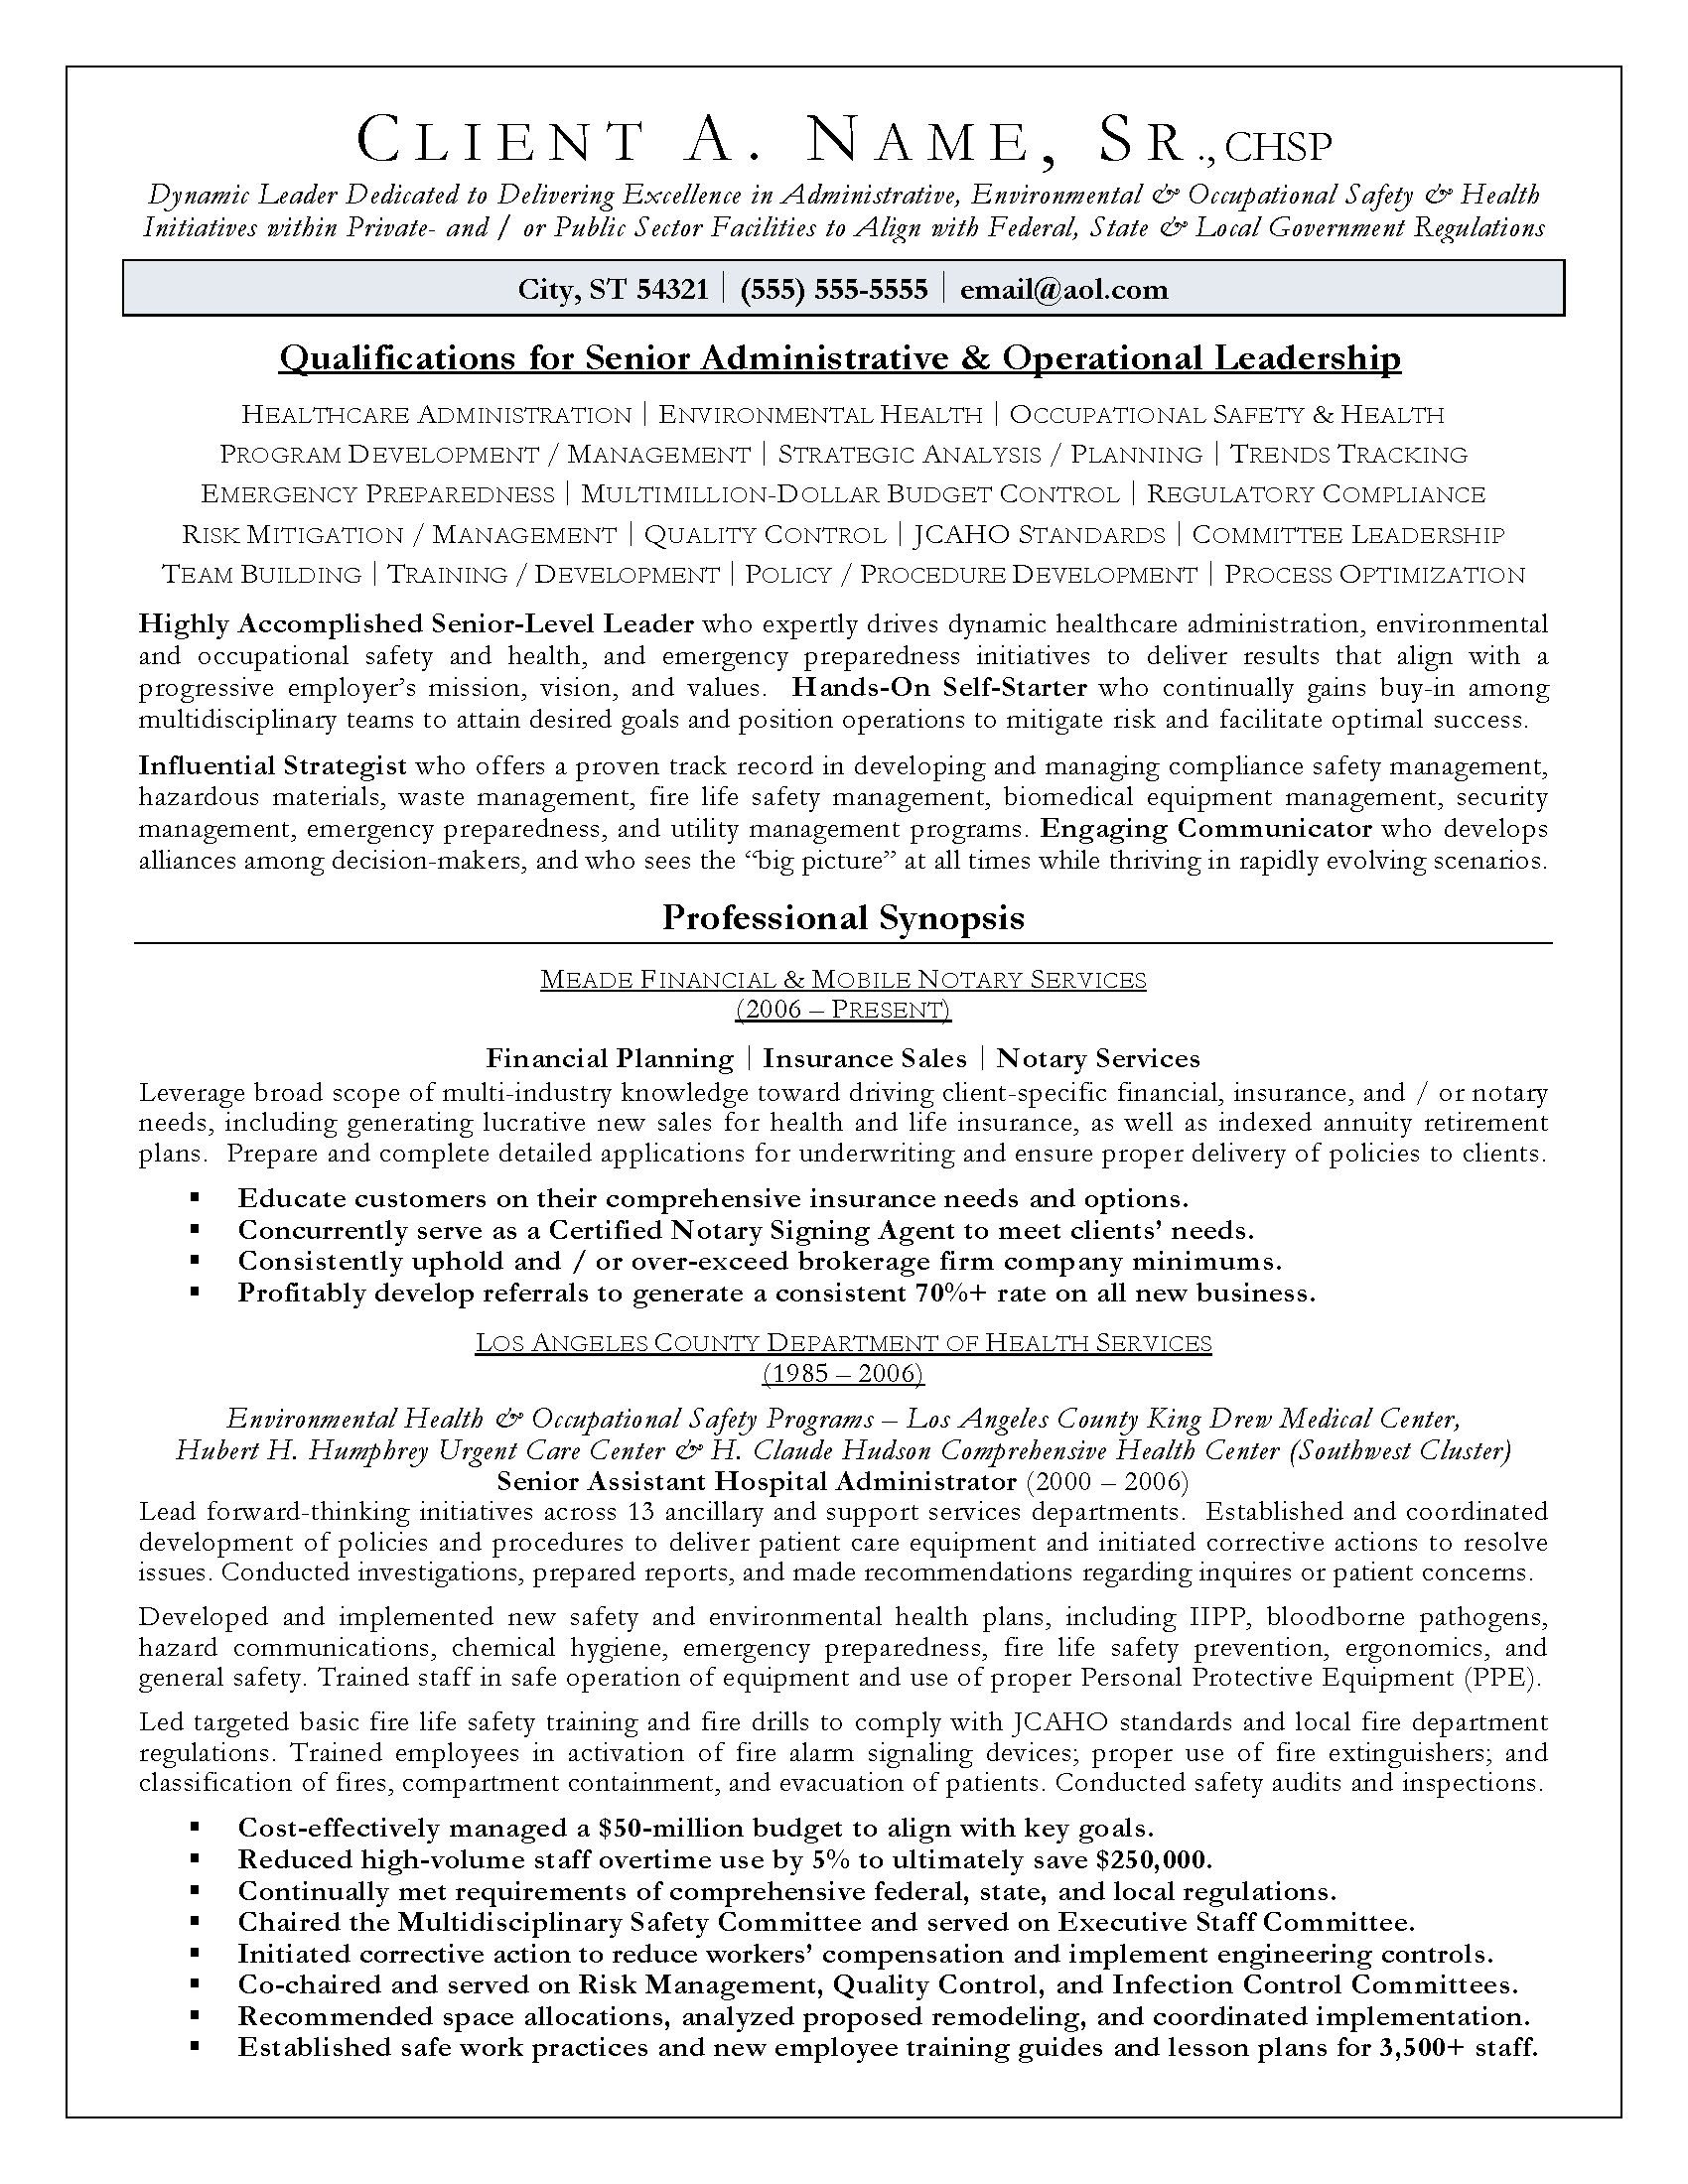 resume samples and examples unsolicited sample great words on air talent babysitter Resume Unsolicited Resume Sample